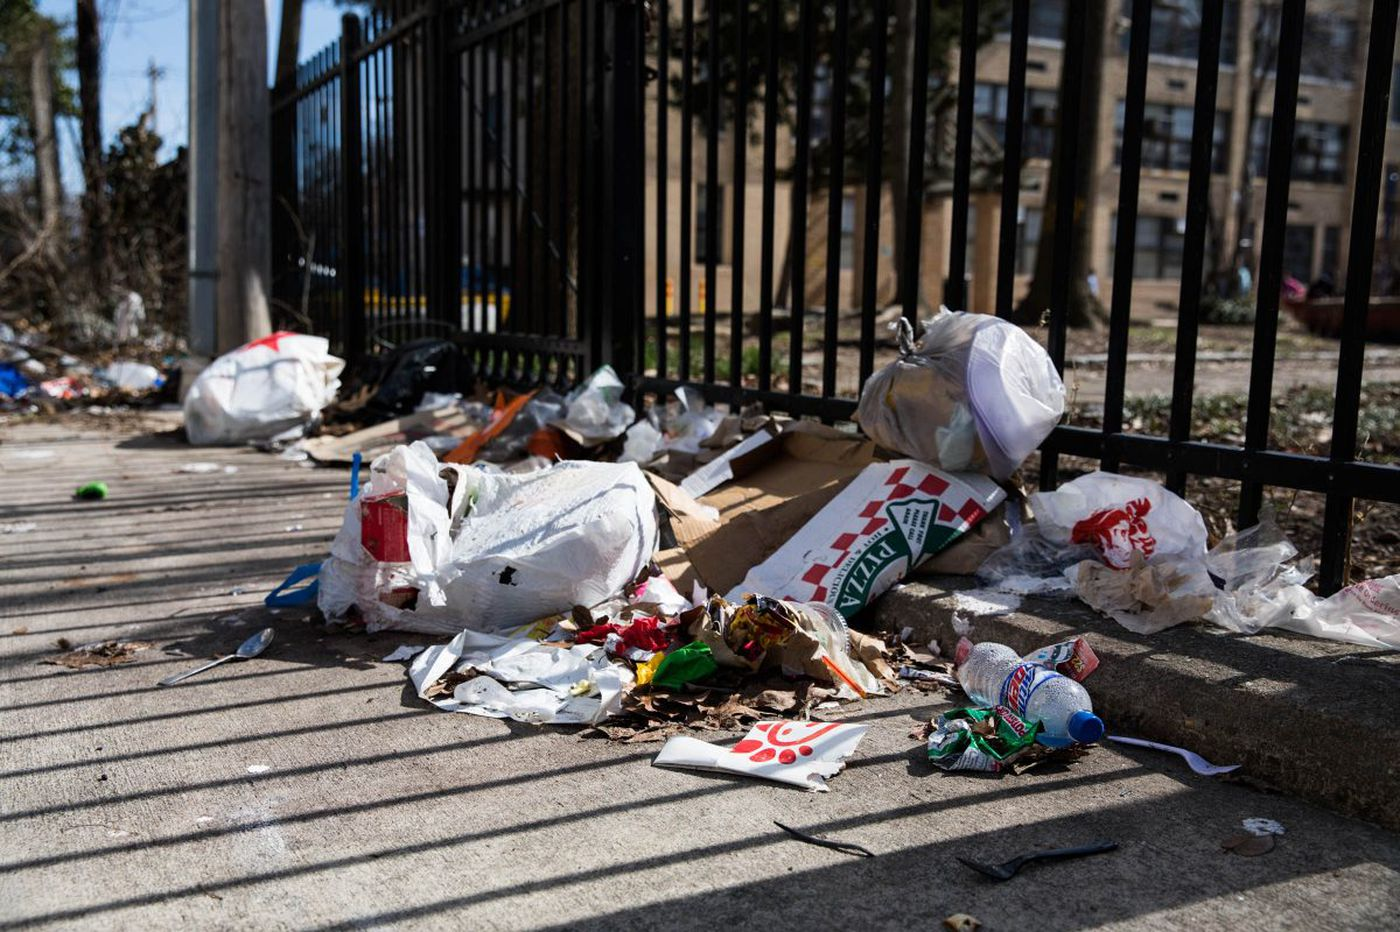 Fine councilmembers for dirty districts? Philly should steal this idea and others to stop litter | Ronnie Polaneczky